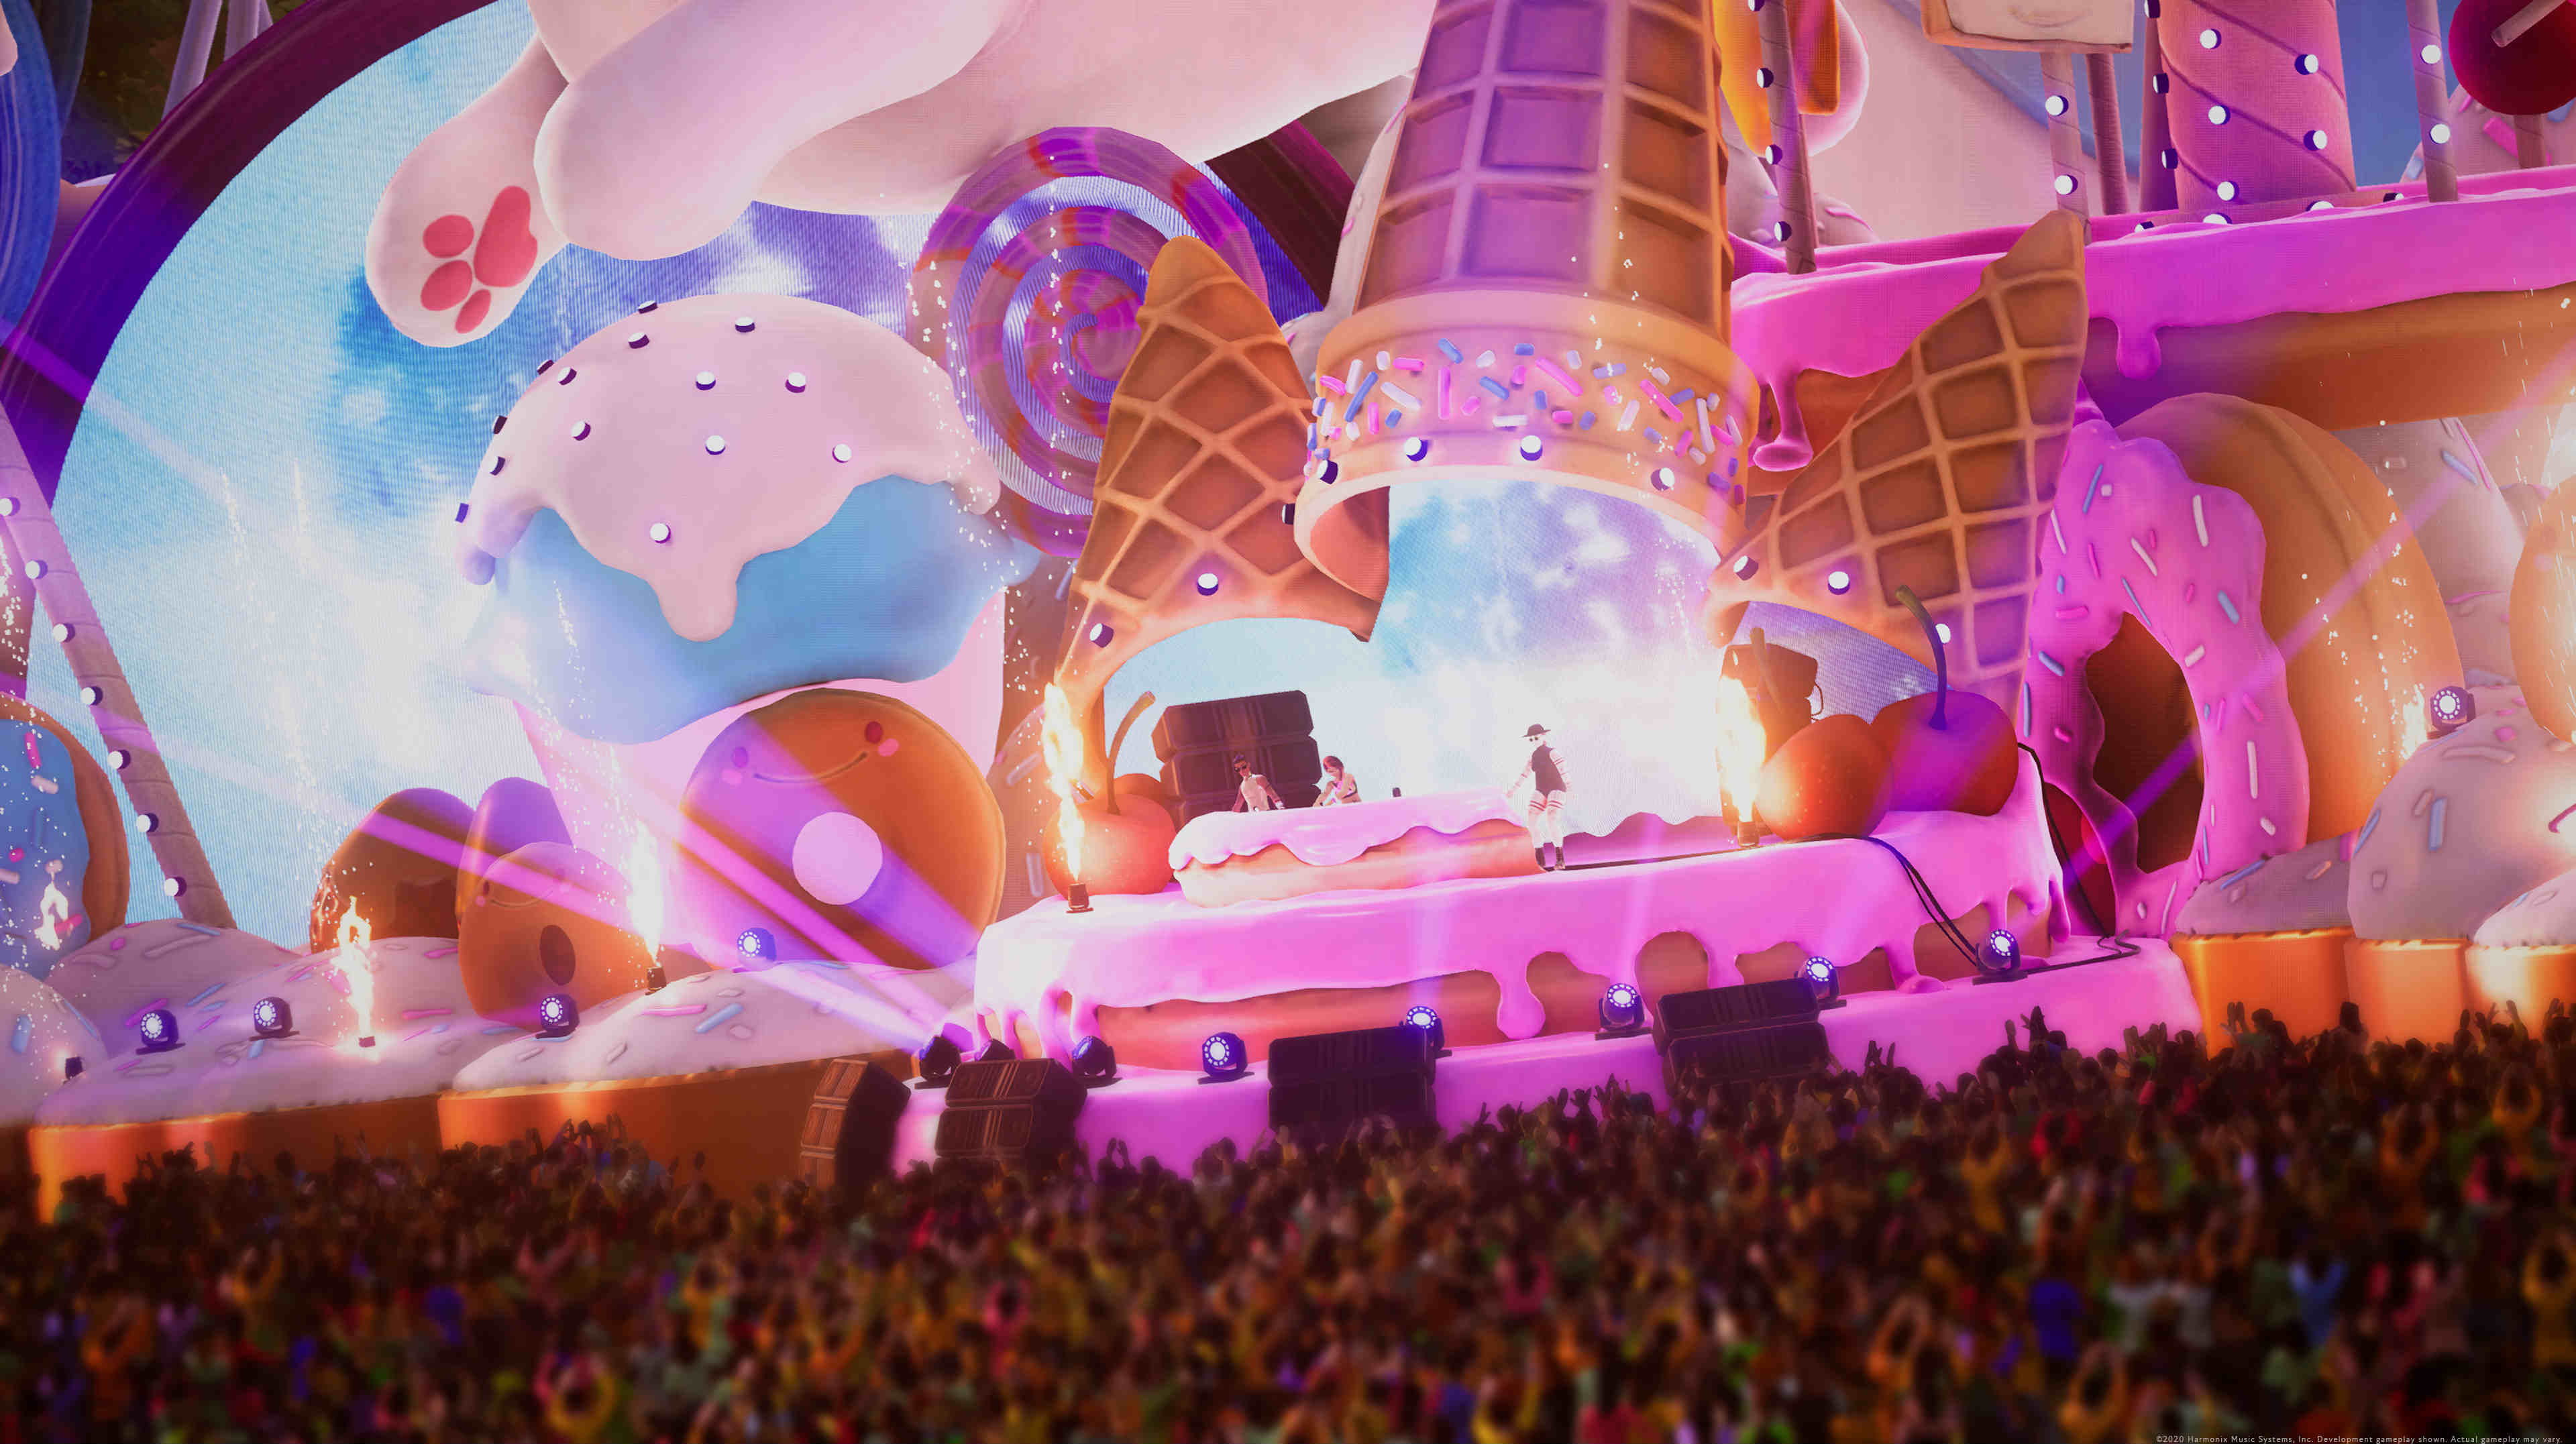 Harmonix's next project is Fuser, a DJ mixing game with artists like Billie Eilish and Post Malone screenshot